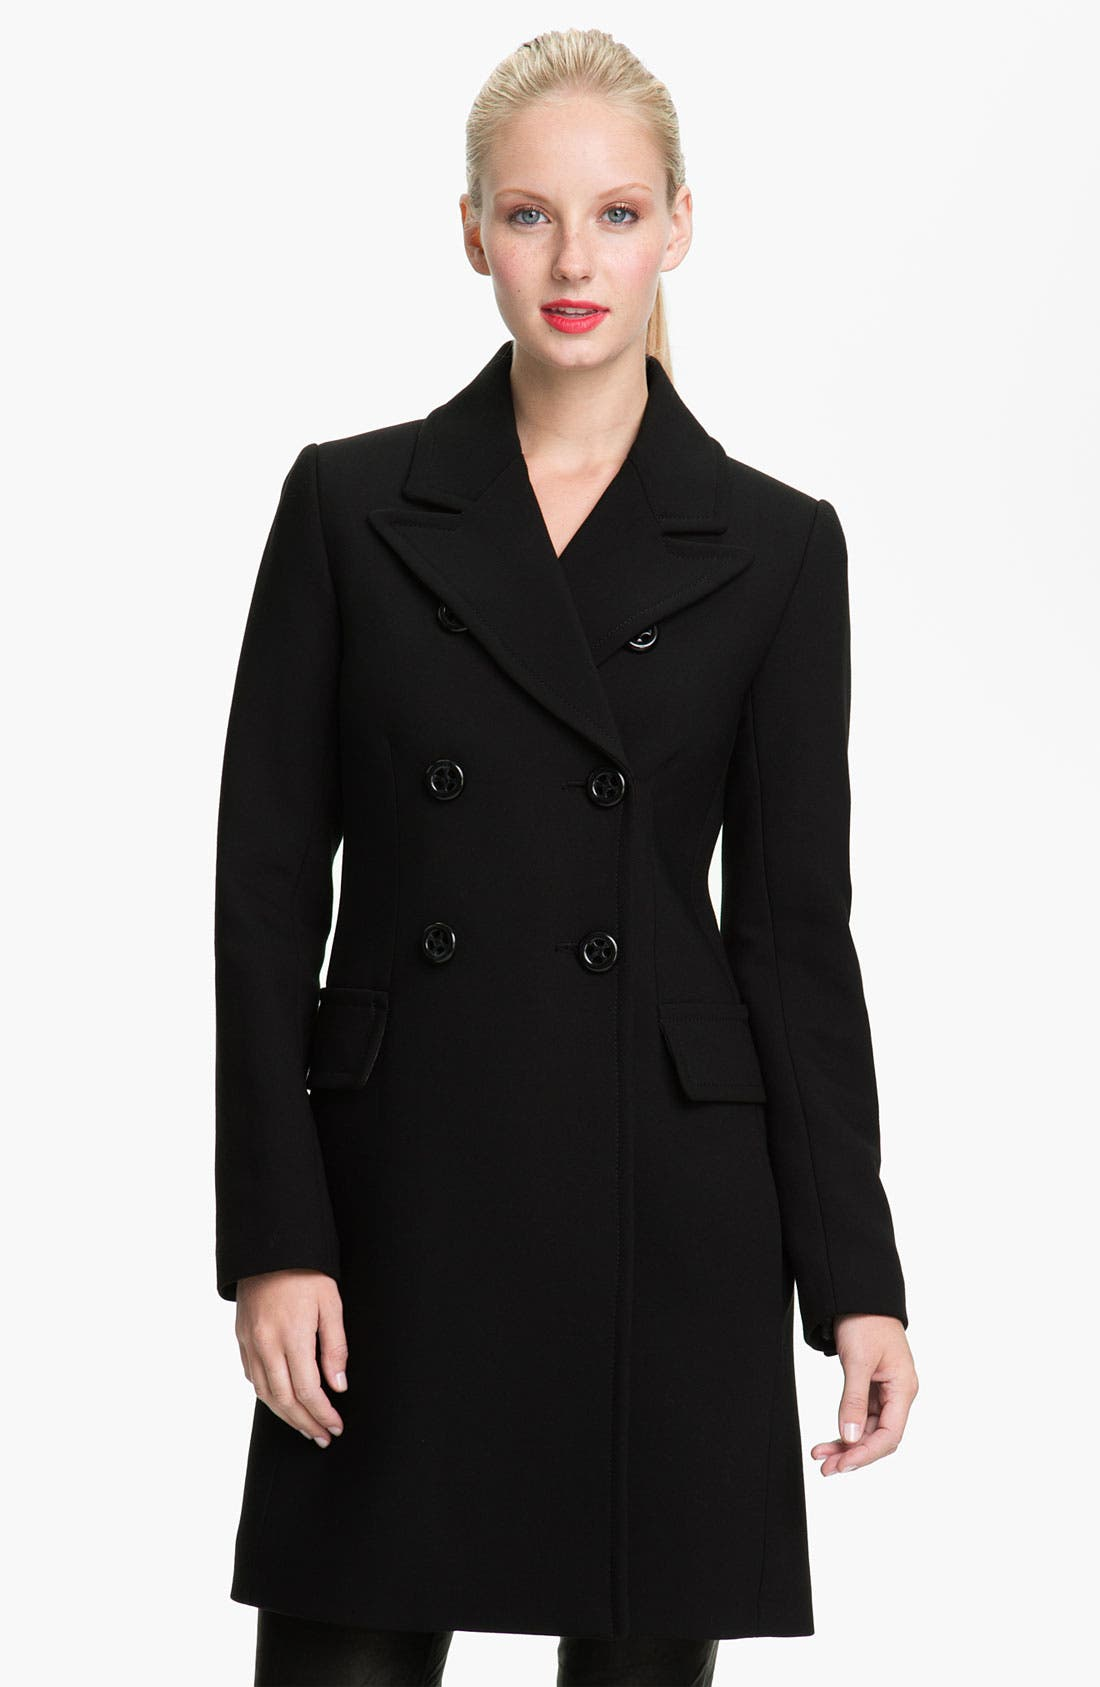 Alternate Image 1 Selected - Trina Turk Double Breasted Coat